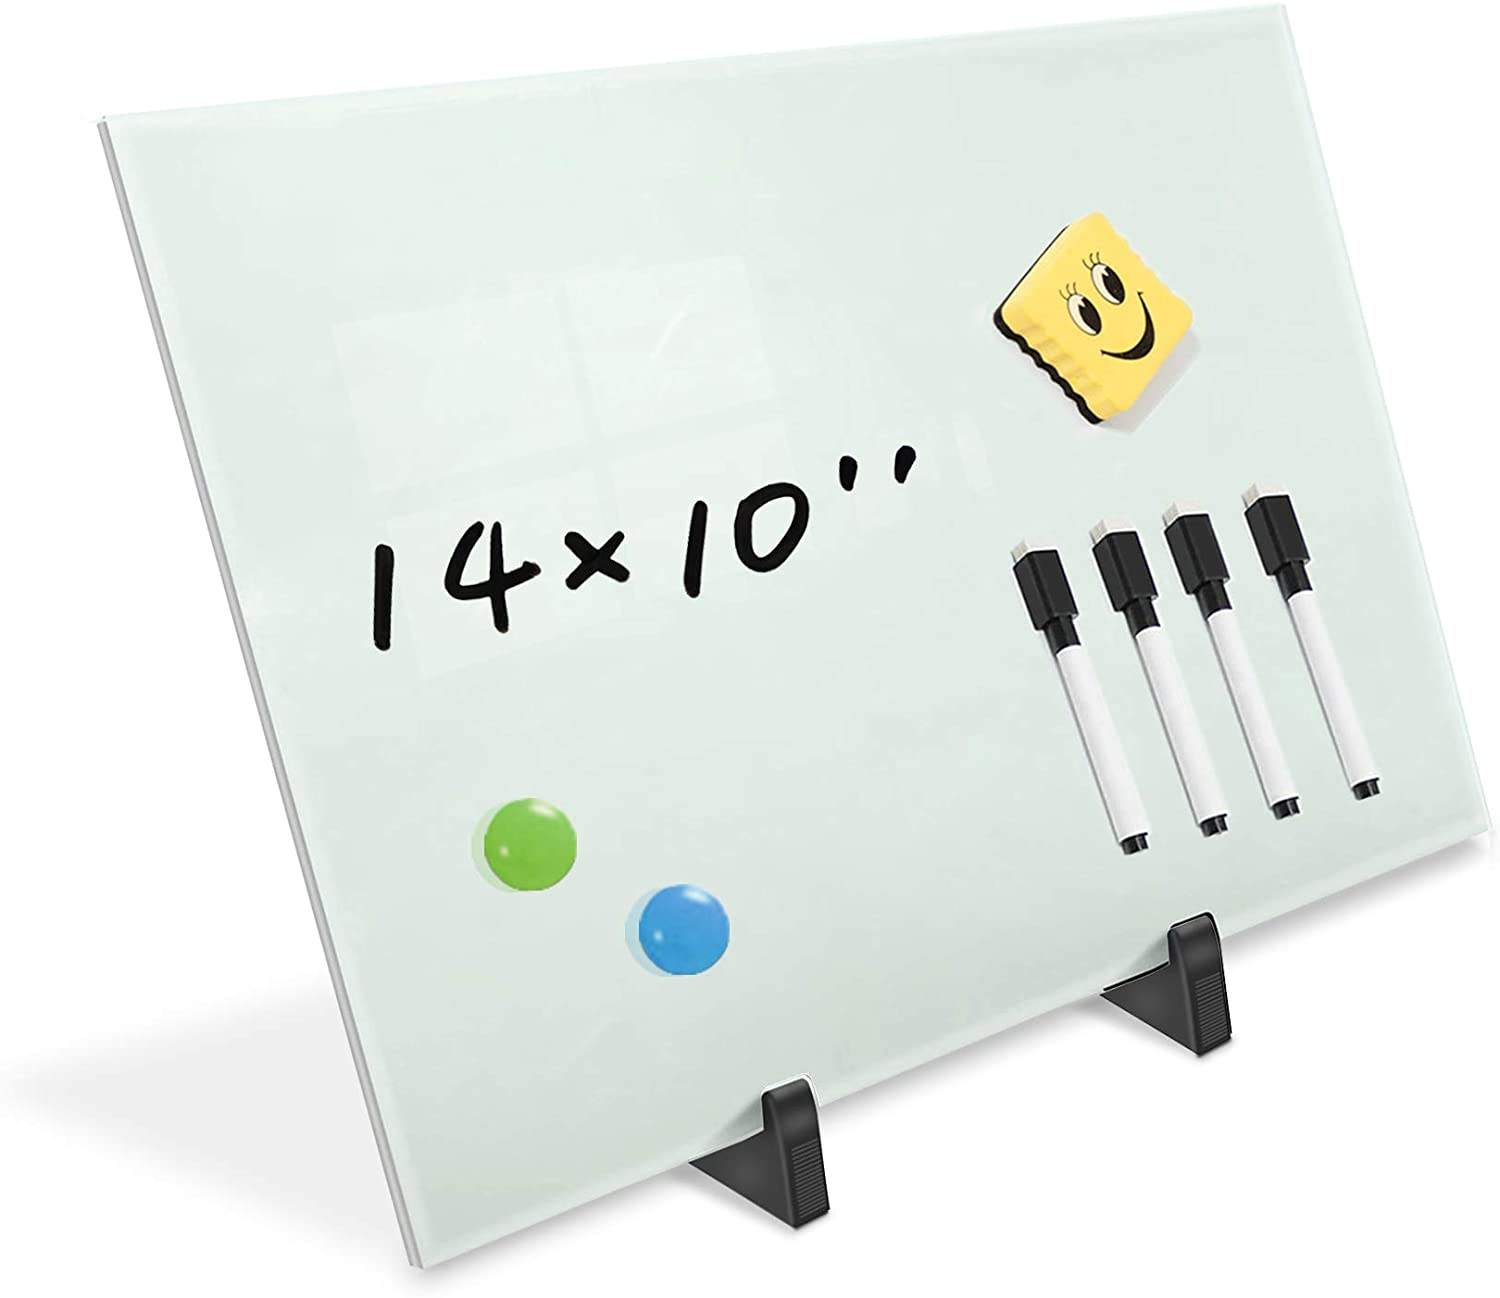 Small Glass Dry Erase Board Desktop Easel - 10 x 14 inches, Magnetic Glass Whiteboard on Stand for Table Desk, Great for Office